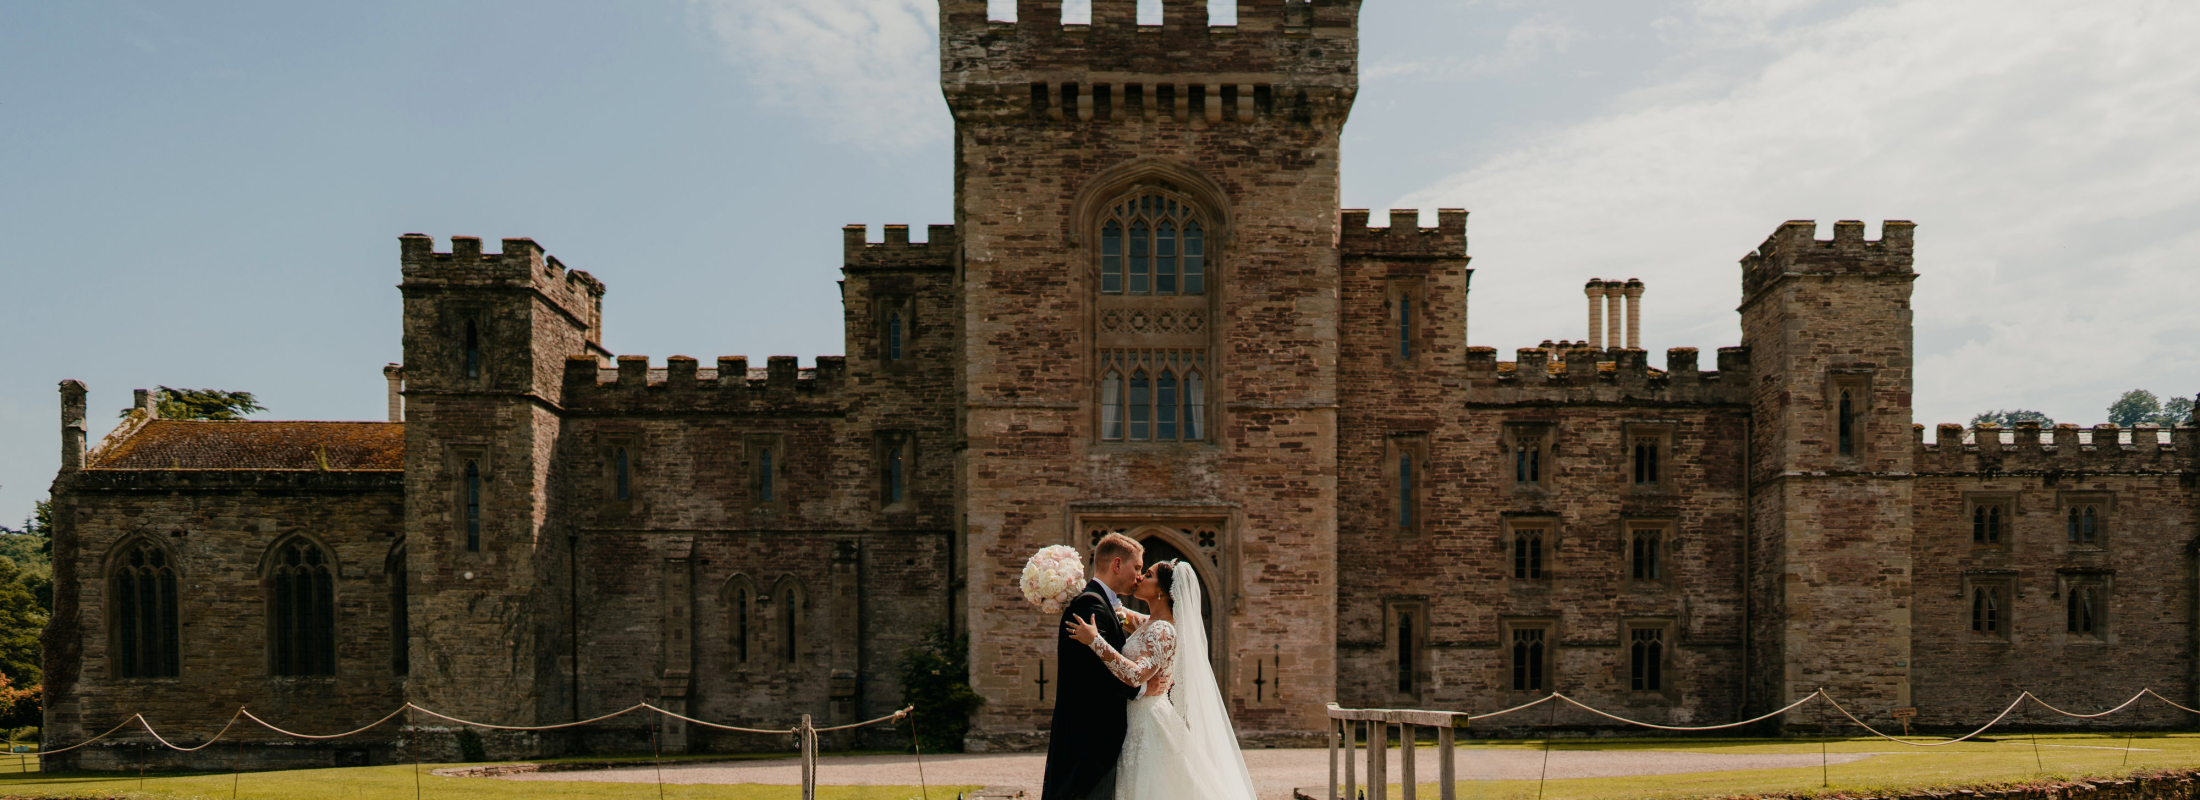 Wedding couple kiss in front of castle